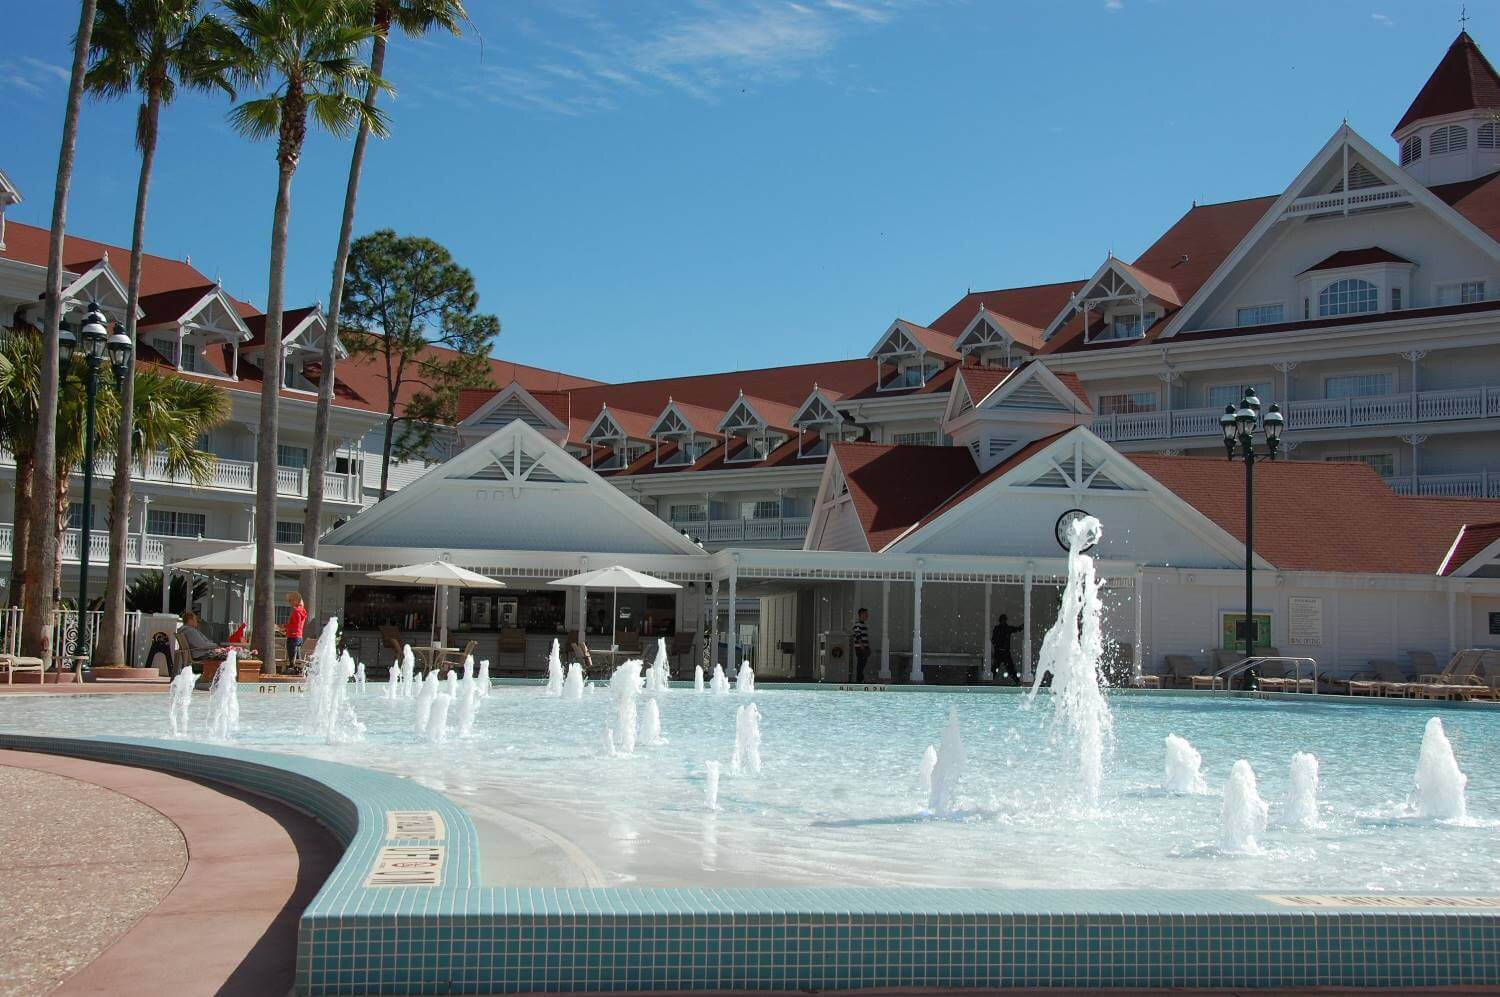 The Courtyard Pool is one of two feature pools at the Grand Floridian